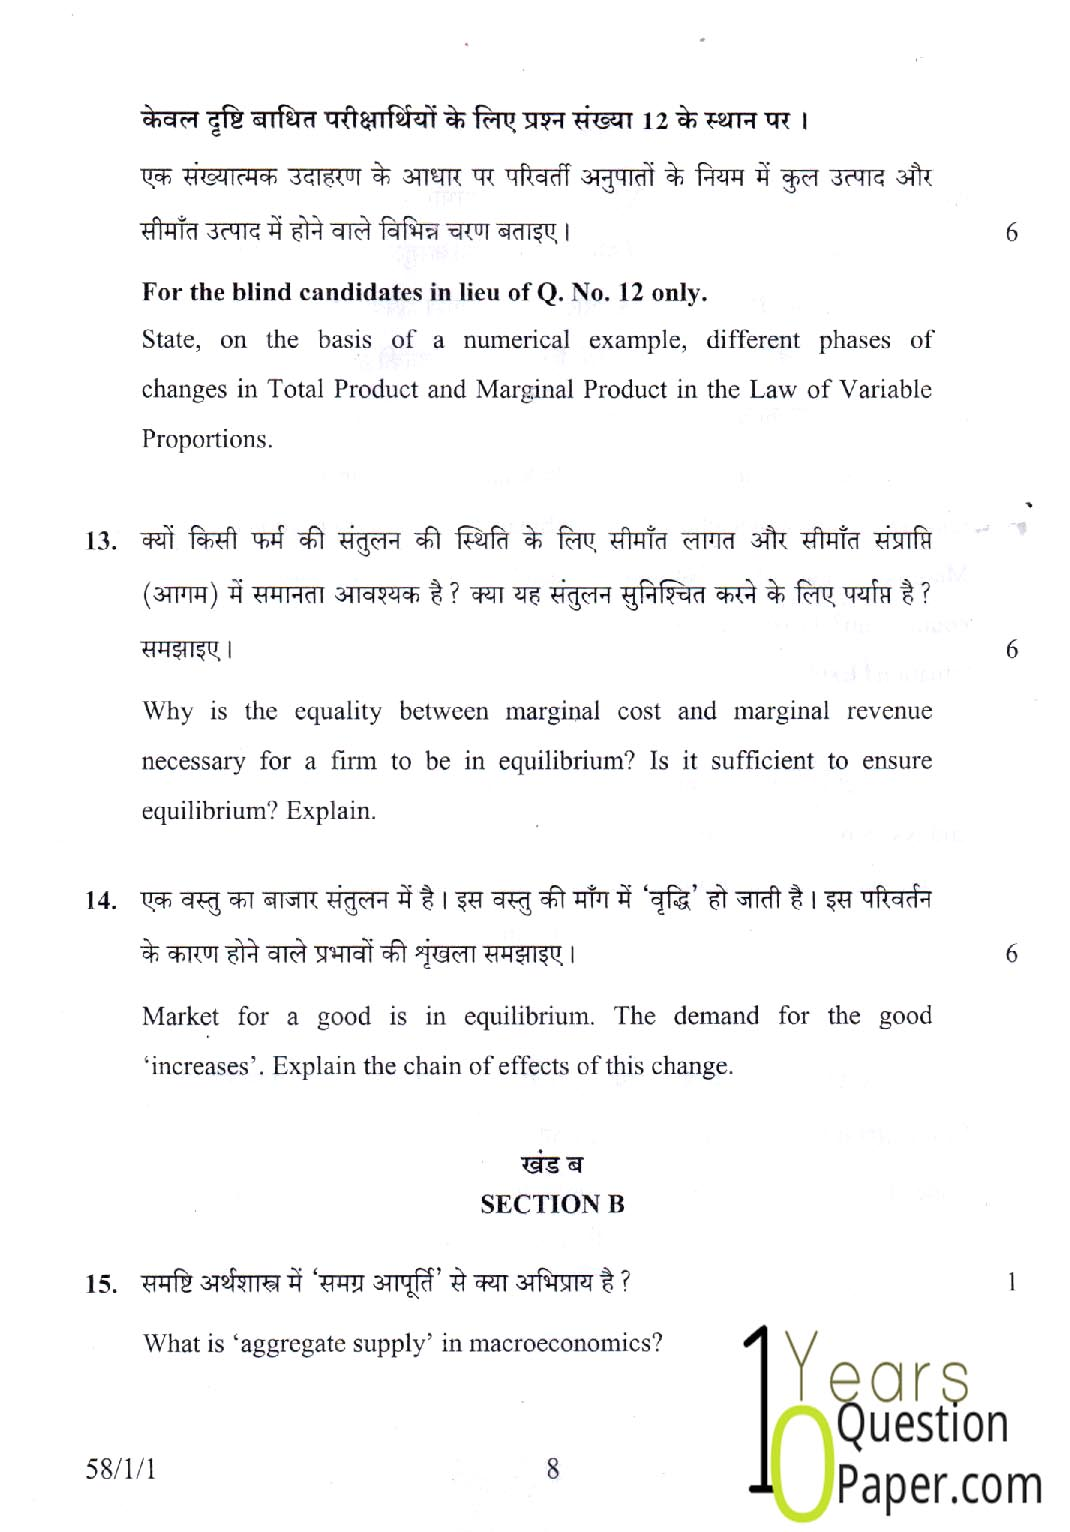 CBSE Class 12 Economics 2015 Question Paper